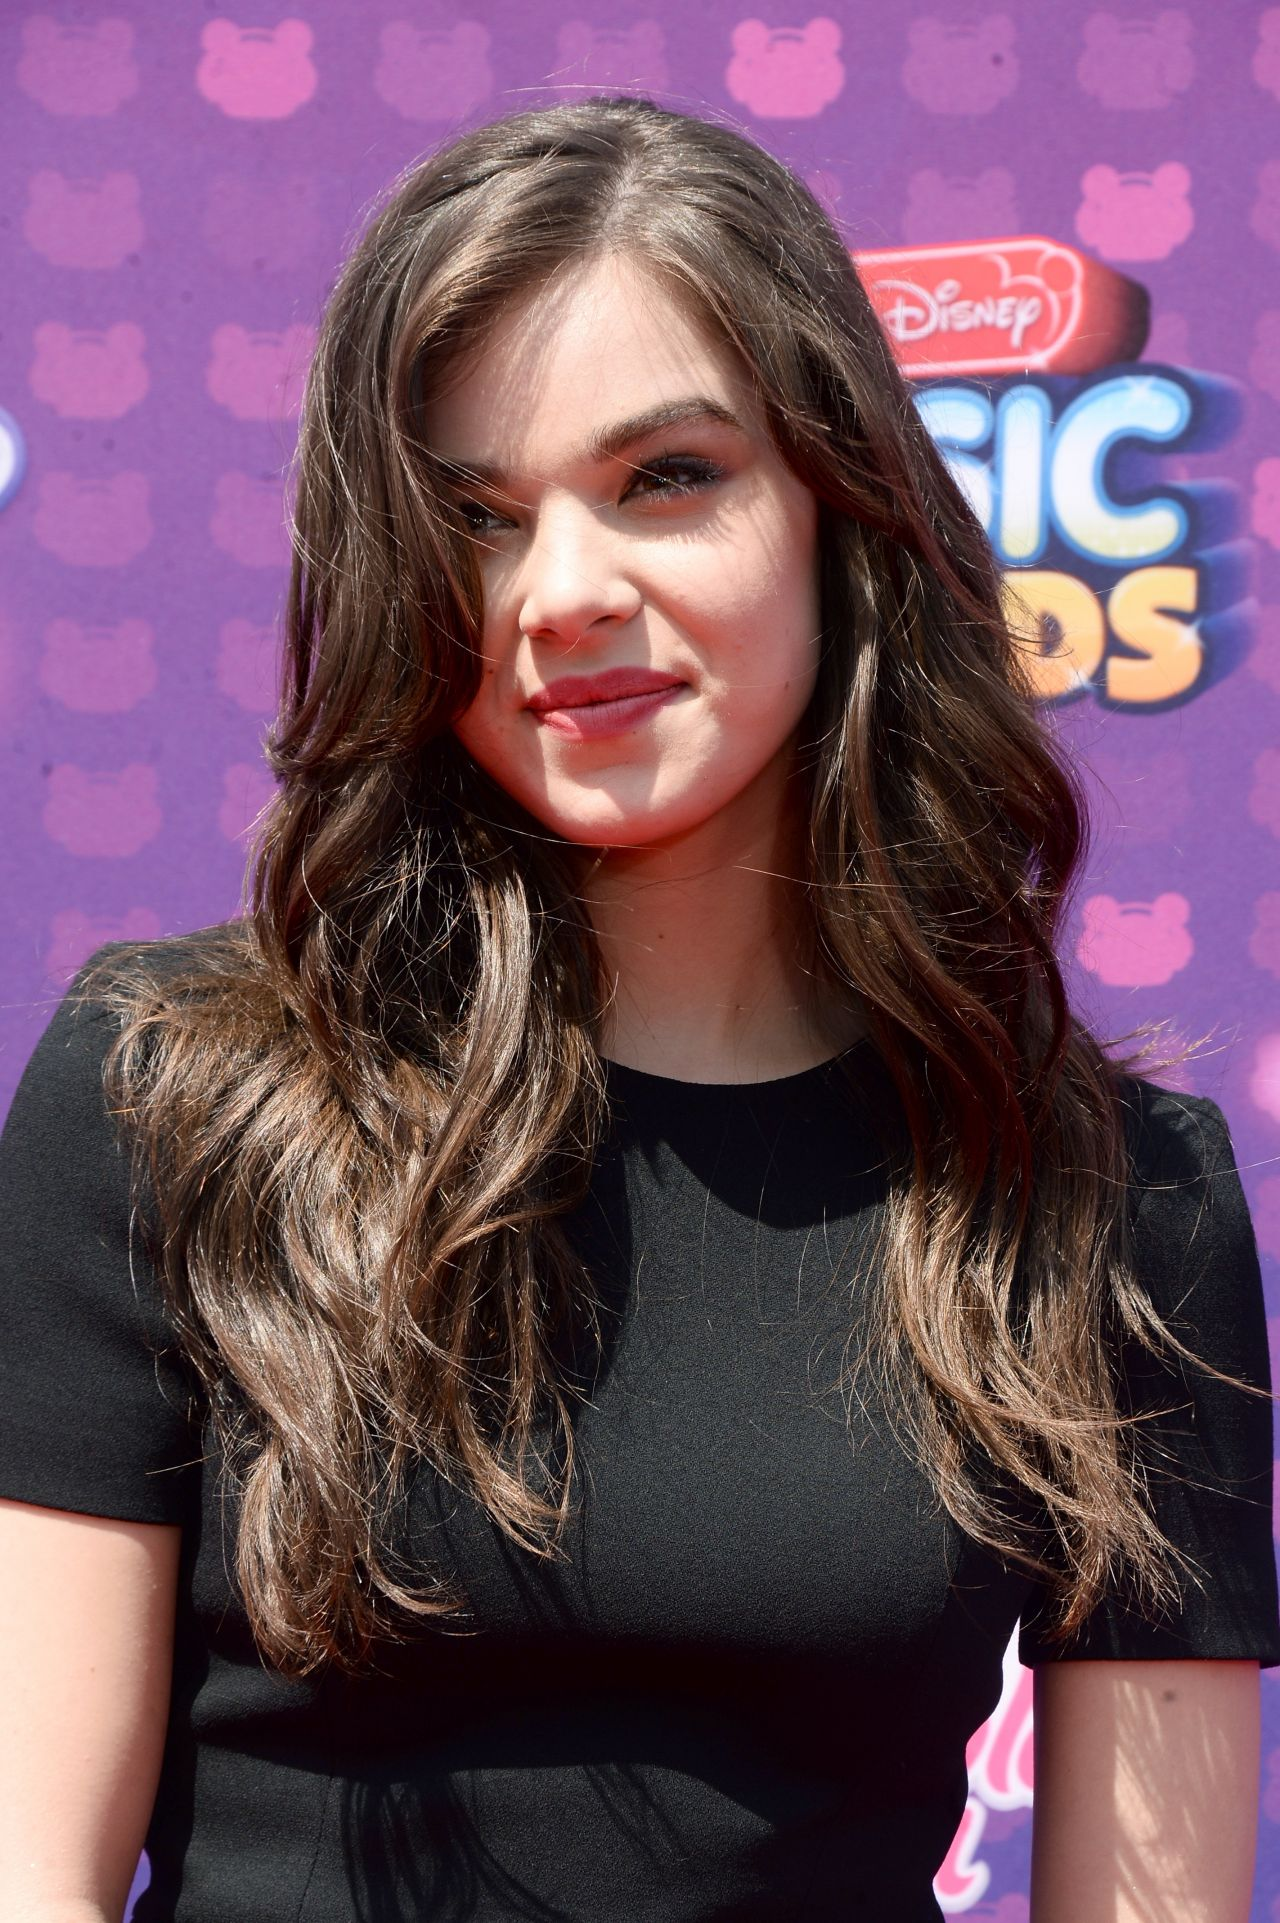 Hailee Steinfeld On The Cover Of Fashion Magazine March: 2016 Radio Disney Music Awards In Los